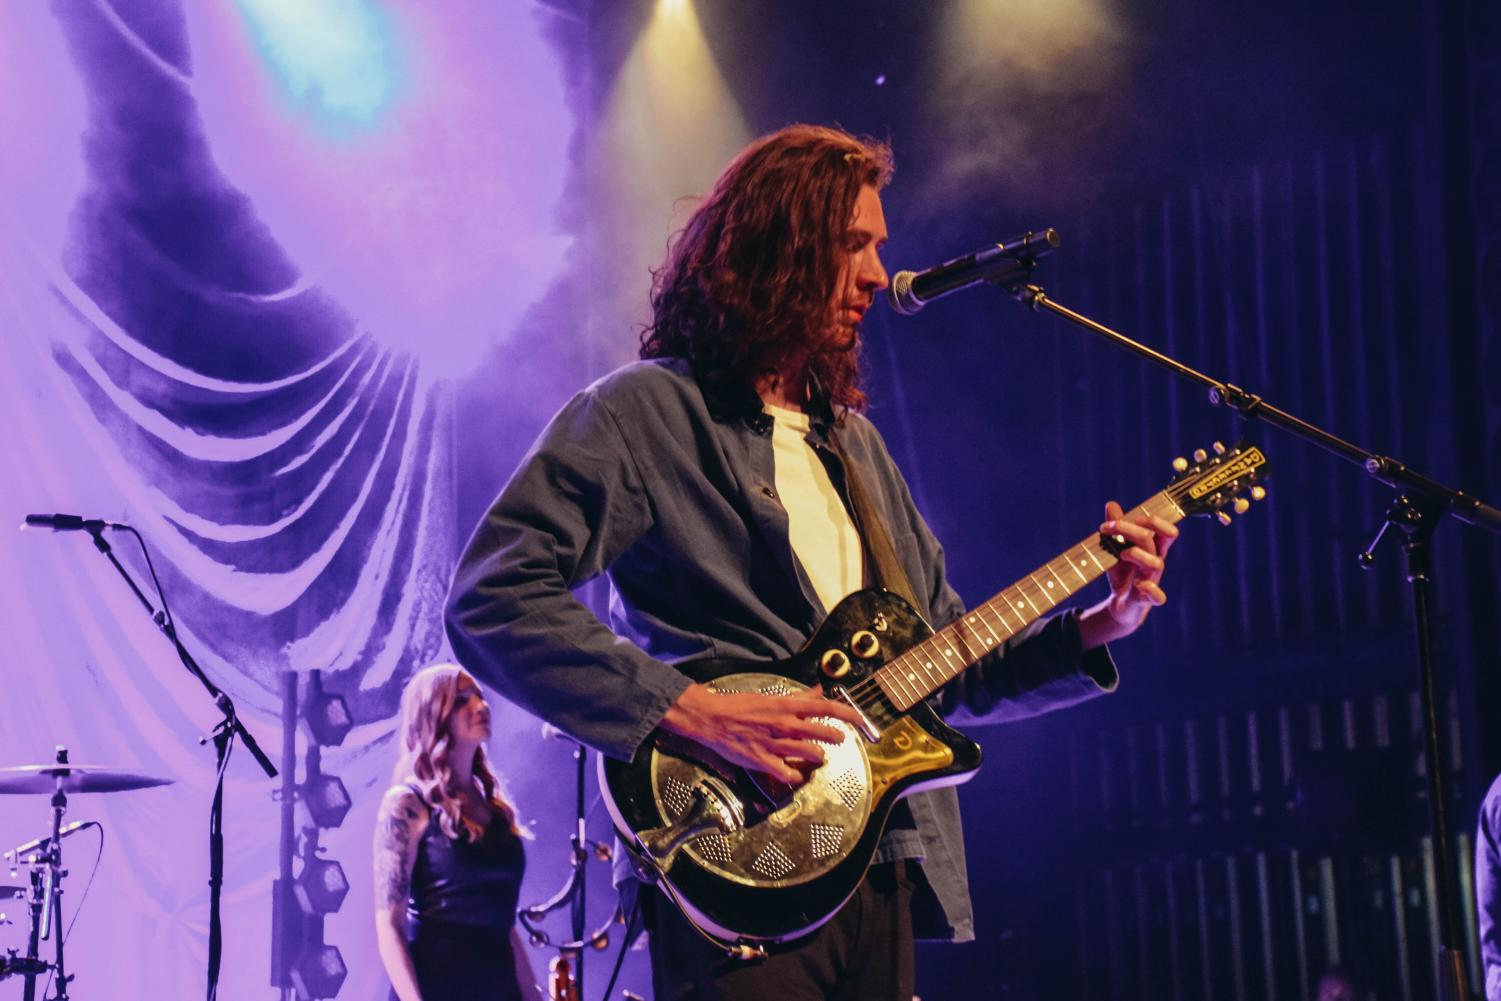 Hozier+teased+upcoming+music+during+his+performance.+